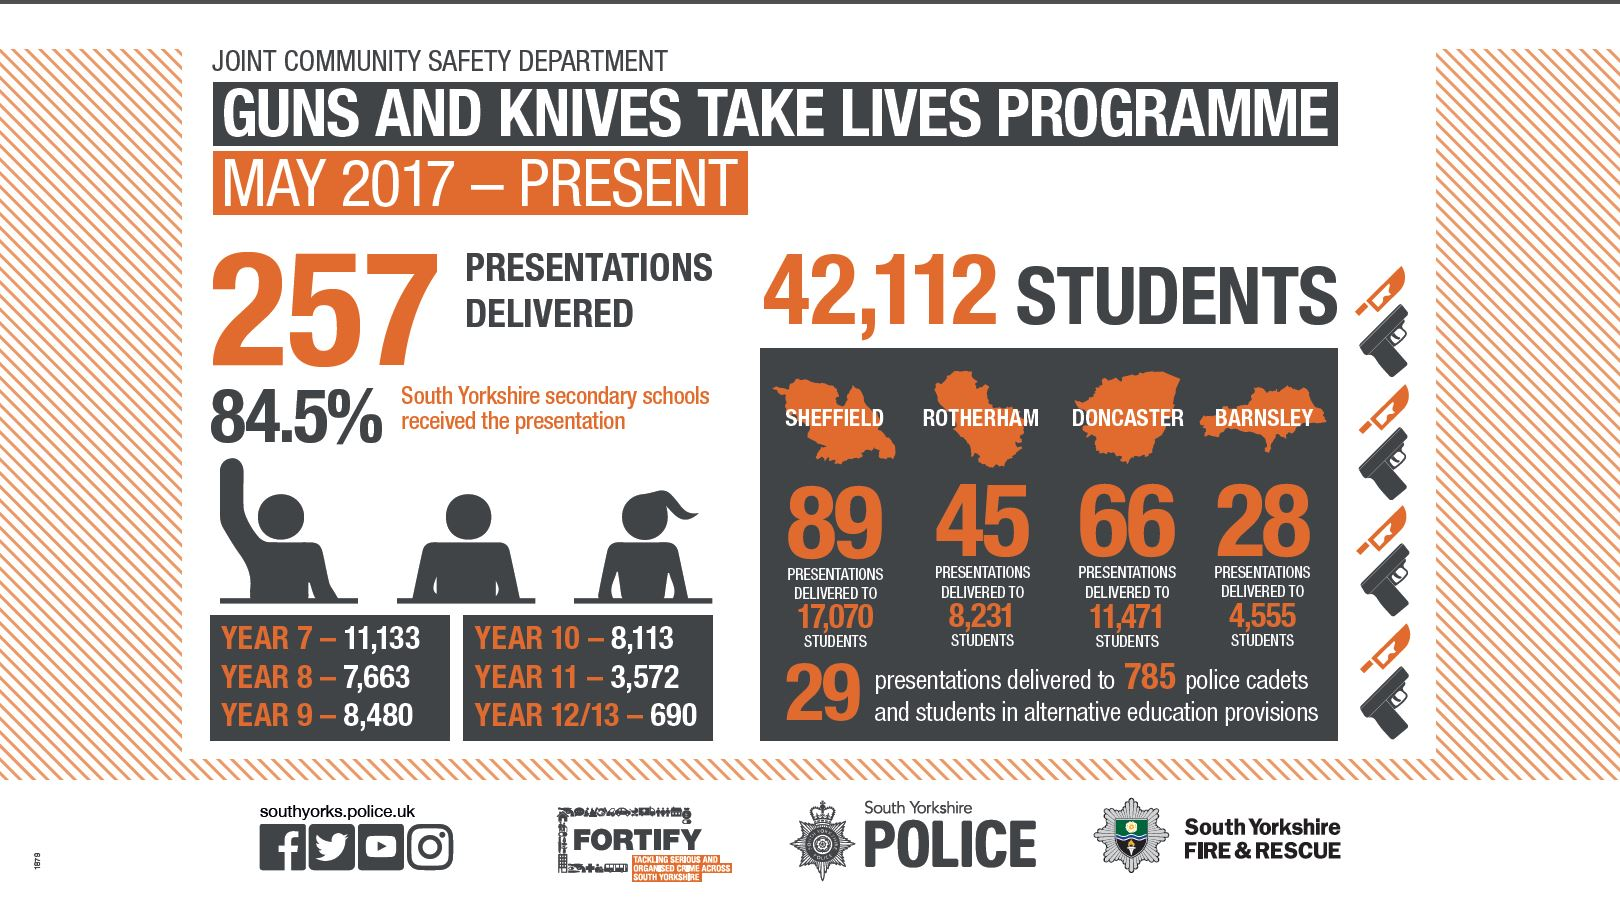 JCSD Guns and Knives takes lives programme